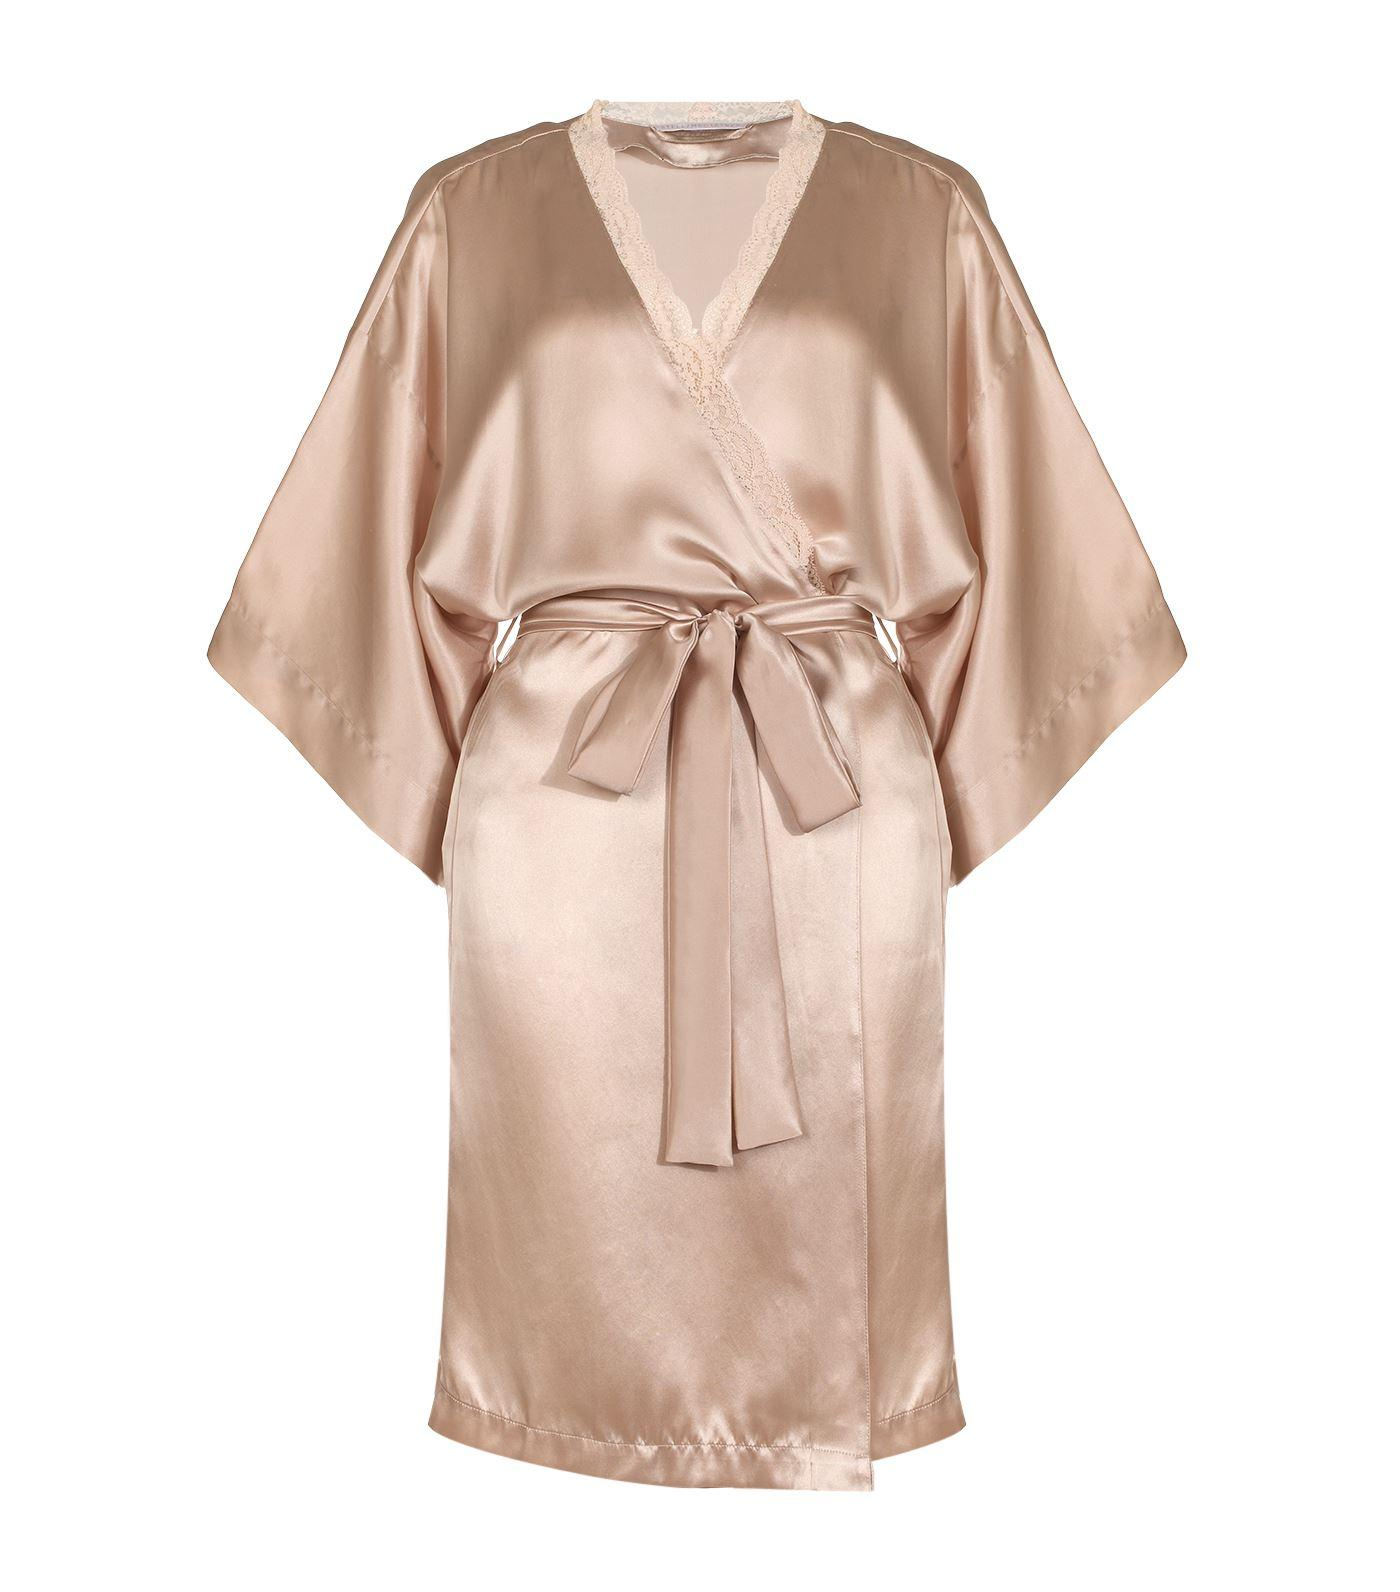 stella mccartney clara whispering short robe in pink lyst. Black Bedroom Furniture Sets. Home Design Ideas